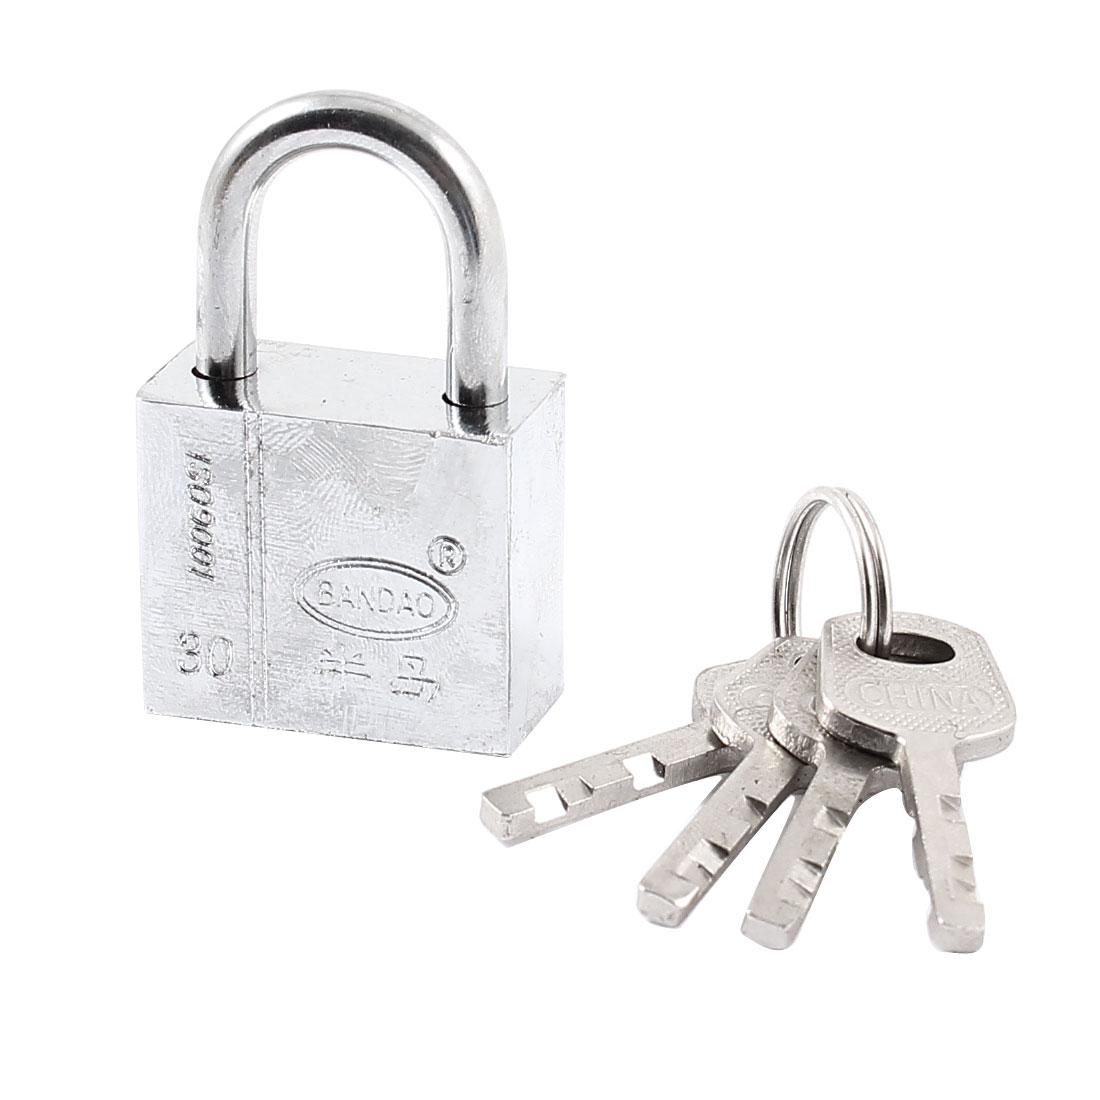 Shop Door Cabinet Rectangle 30mm Long Security Pad Lock Keys Set